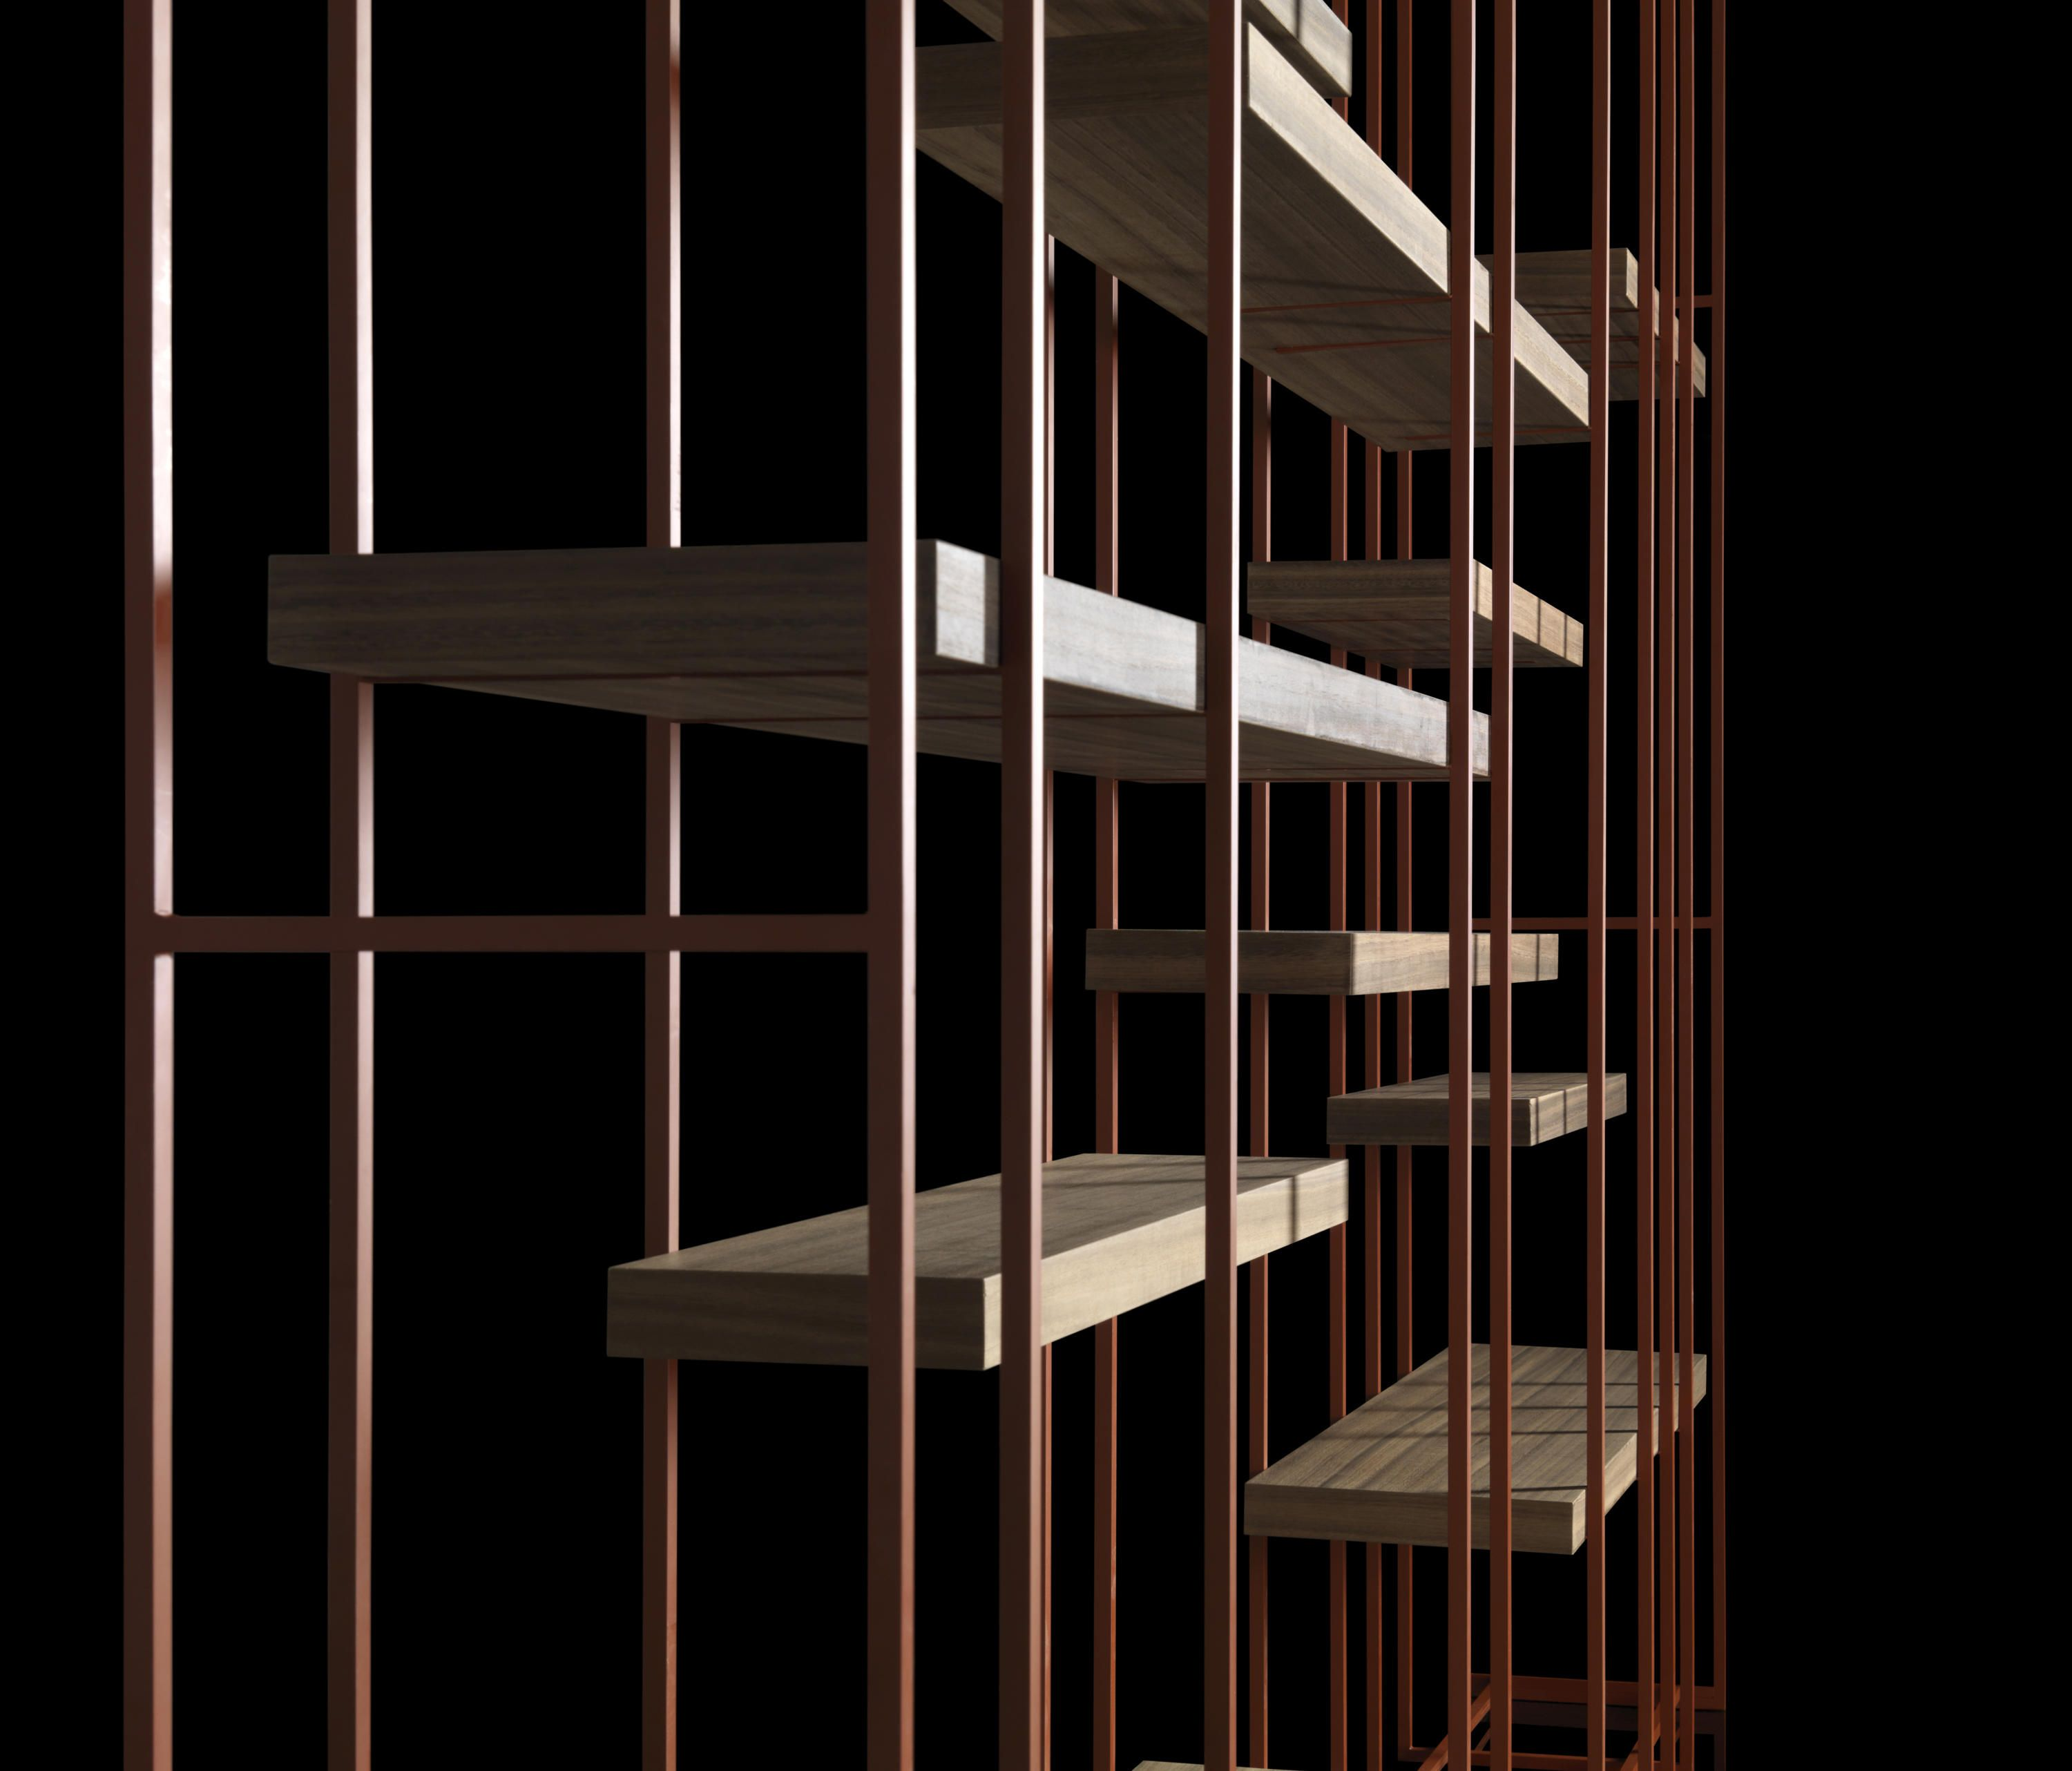 21db11fb8c Cage B by HENGE | דה פולס ספריה | Shelves, Storage shelves, Cabinet ...